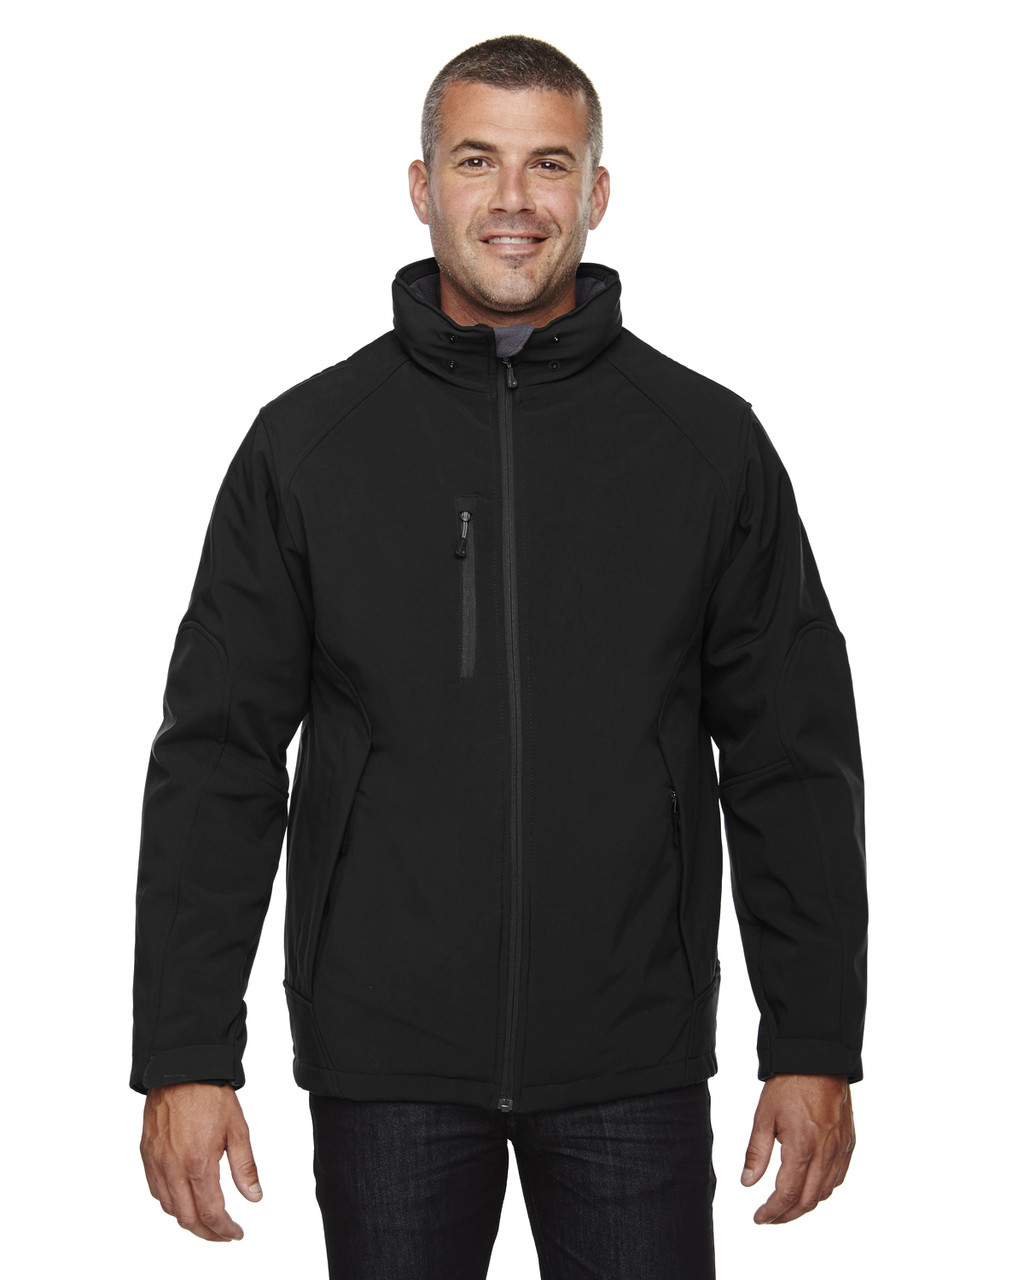 Black - 88159 North End Men's Insulated Soft Shell Jacket With Detachable Hood | Blankclothing.ca